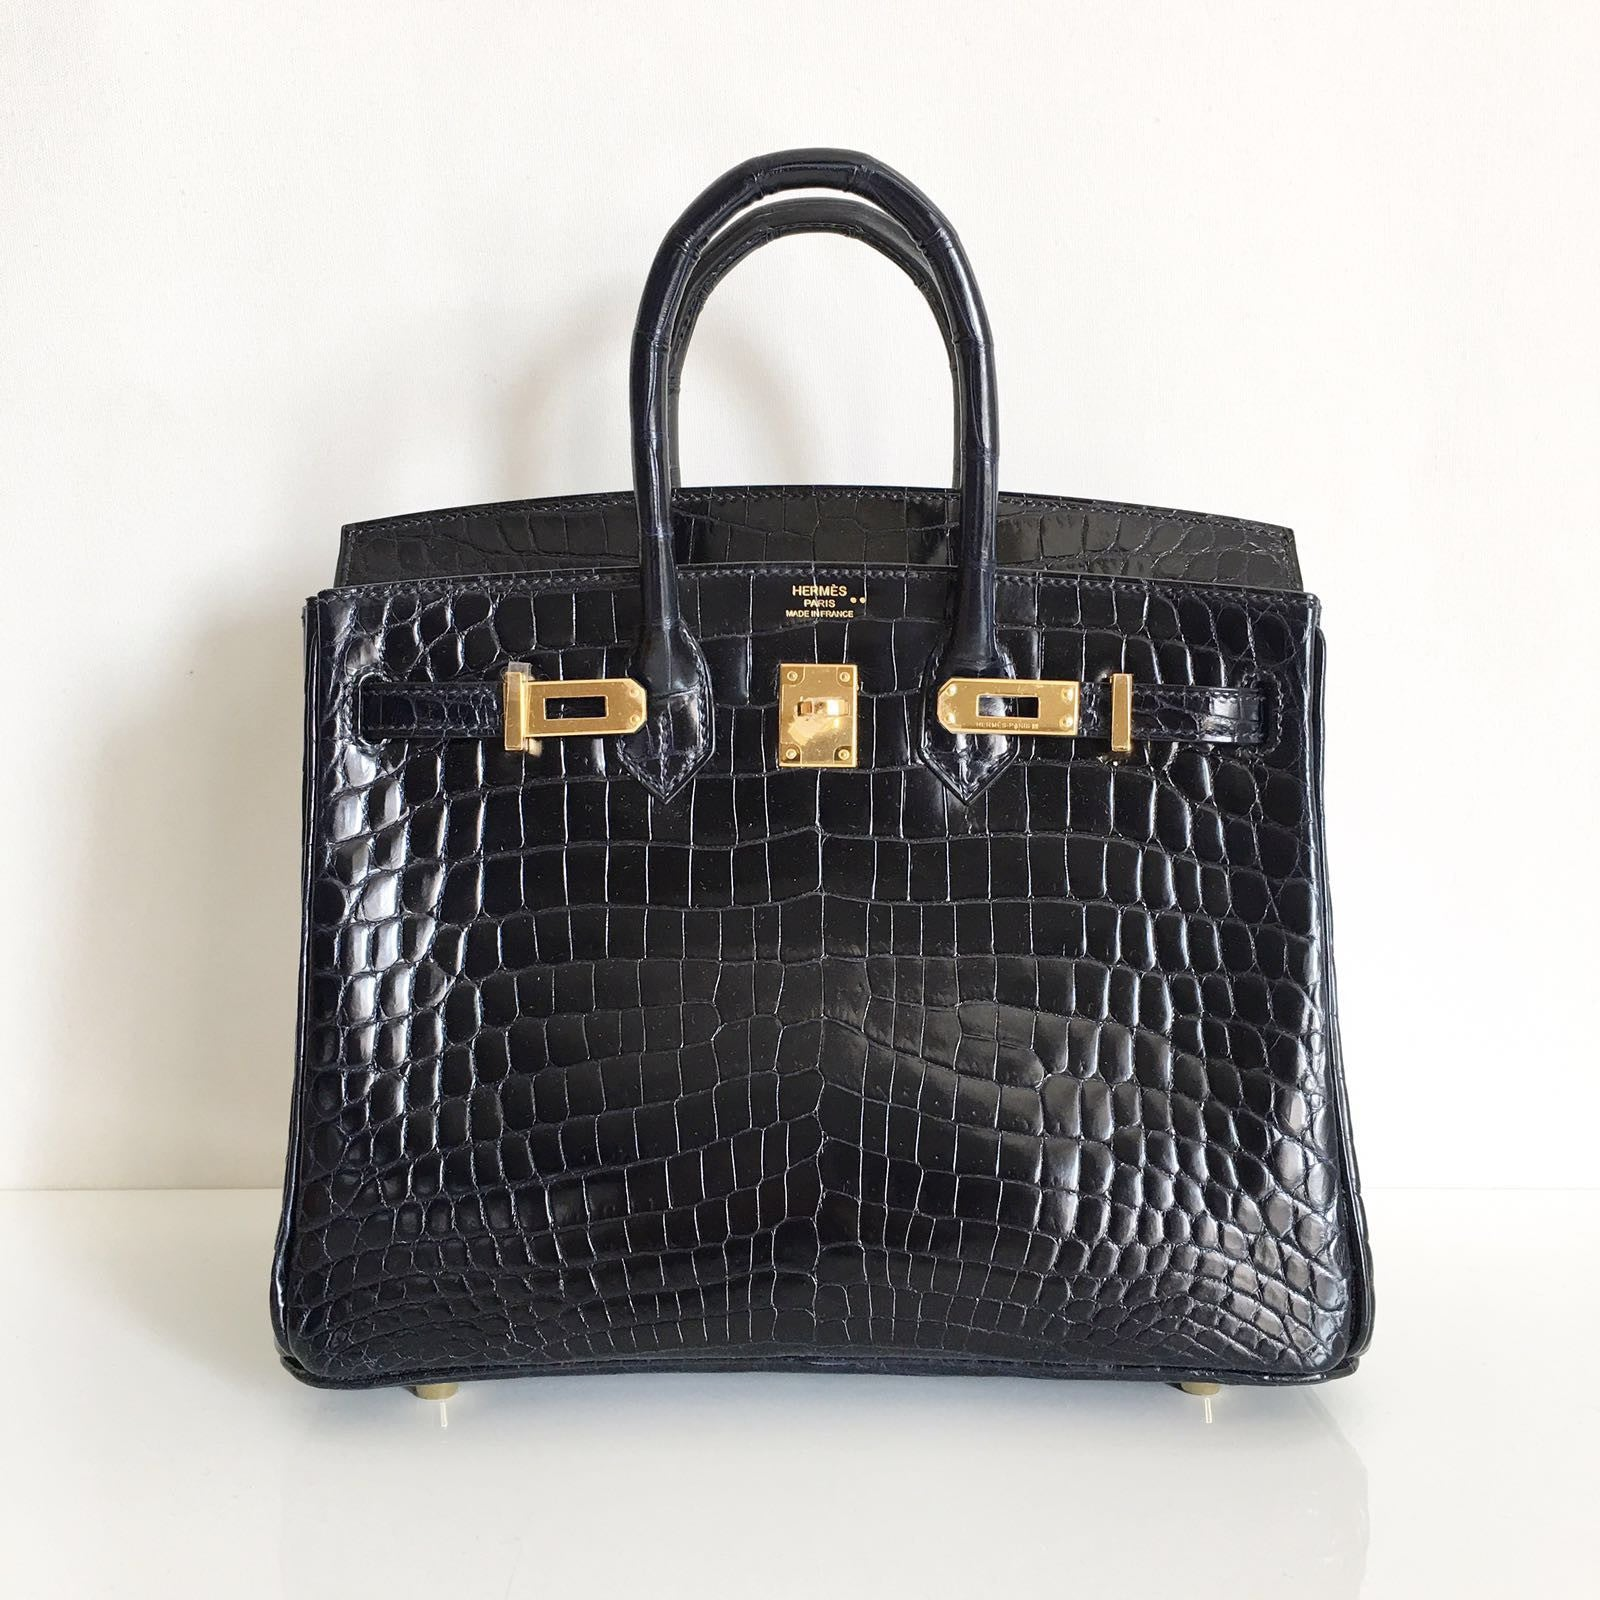 10 things you might not know about the Hermes Birkin